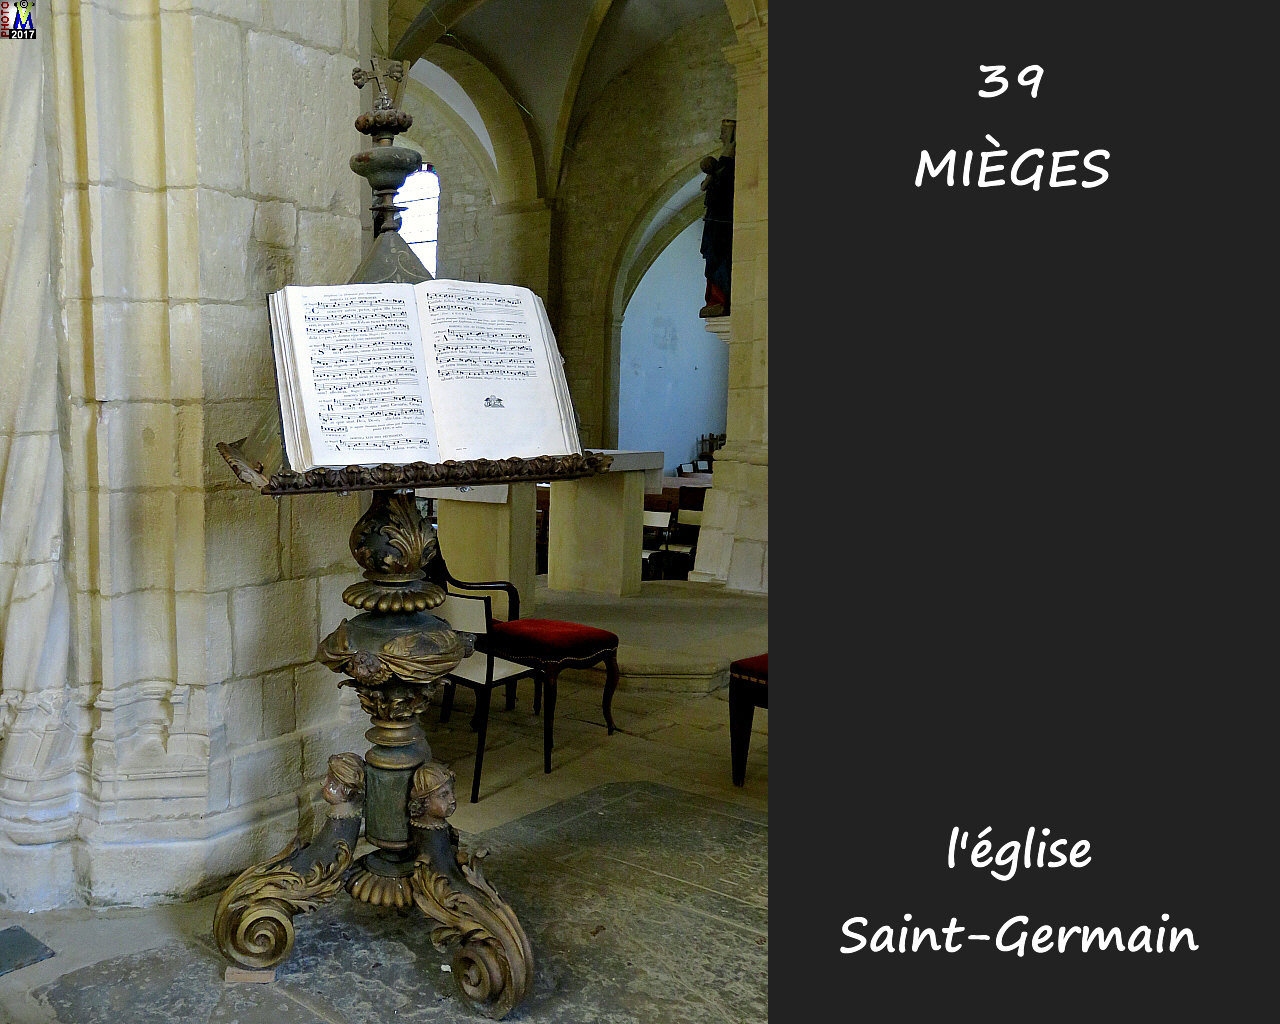 39MIEGES_eglise_250.jpg